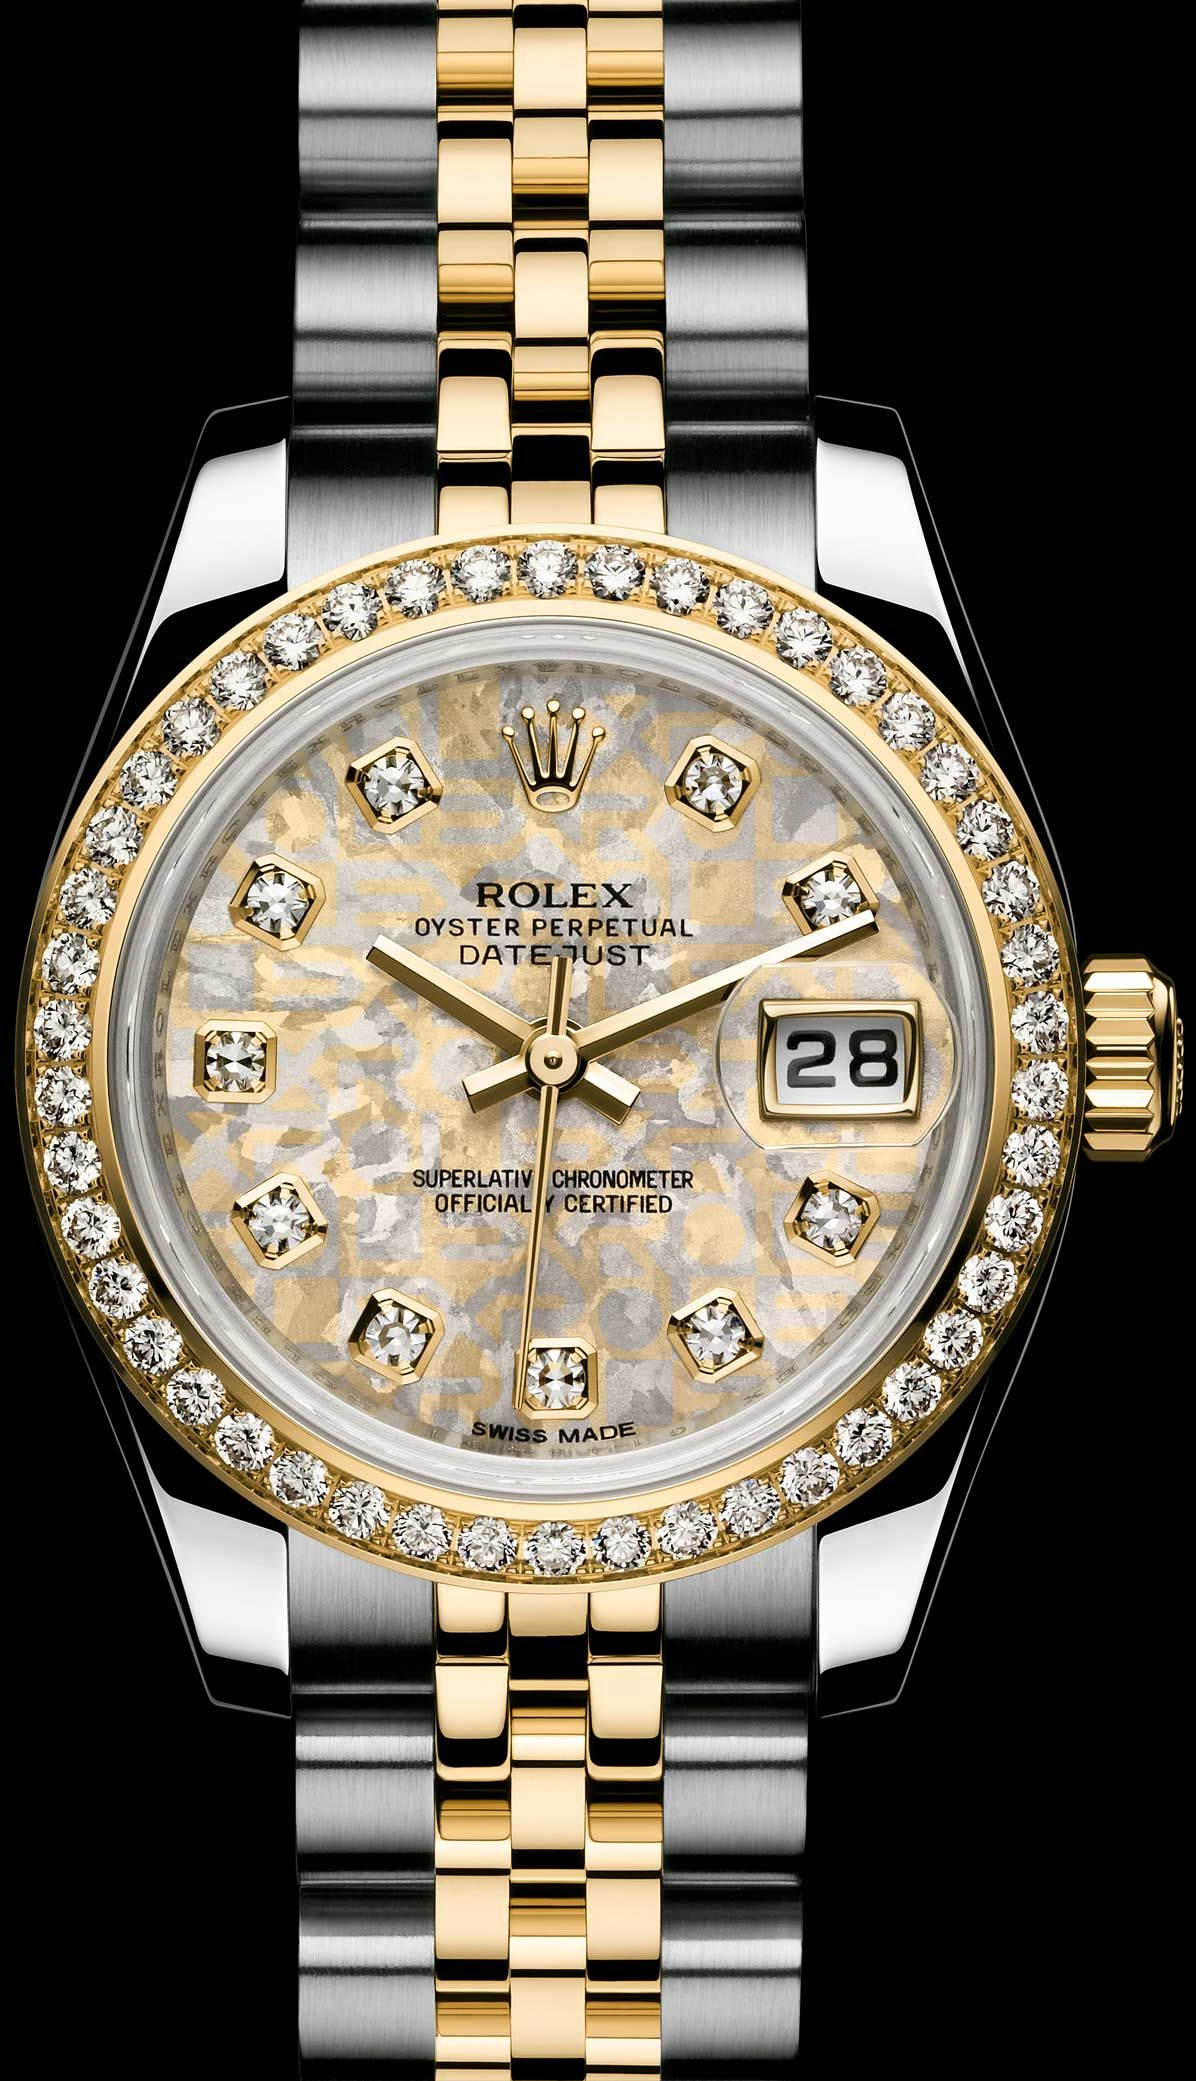 ef6ae6f1291 ROLEX LADY-DATEJUST  GOLD CRYSTALS DIAL - ROLEX Timeless Luxury Watches More